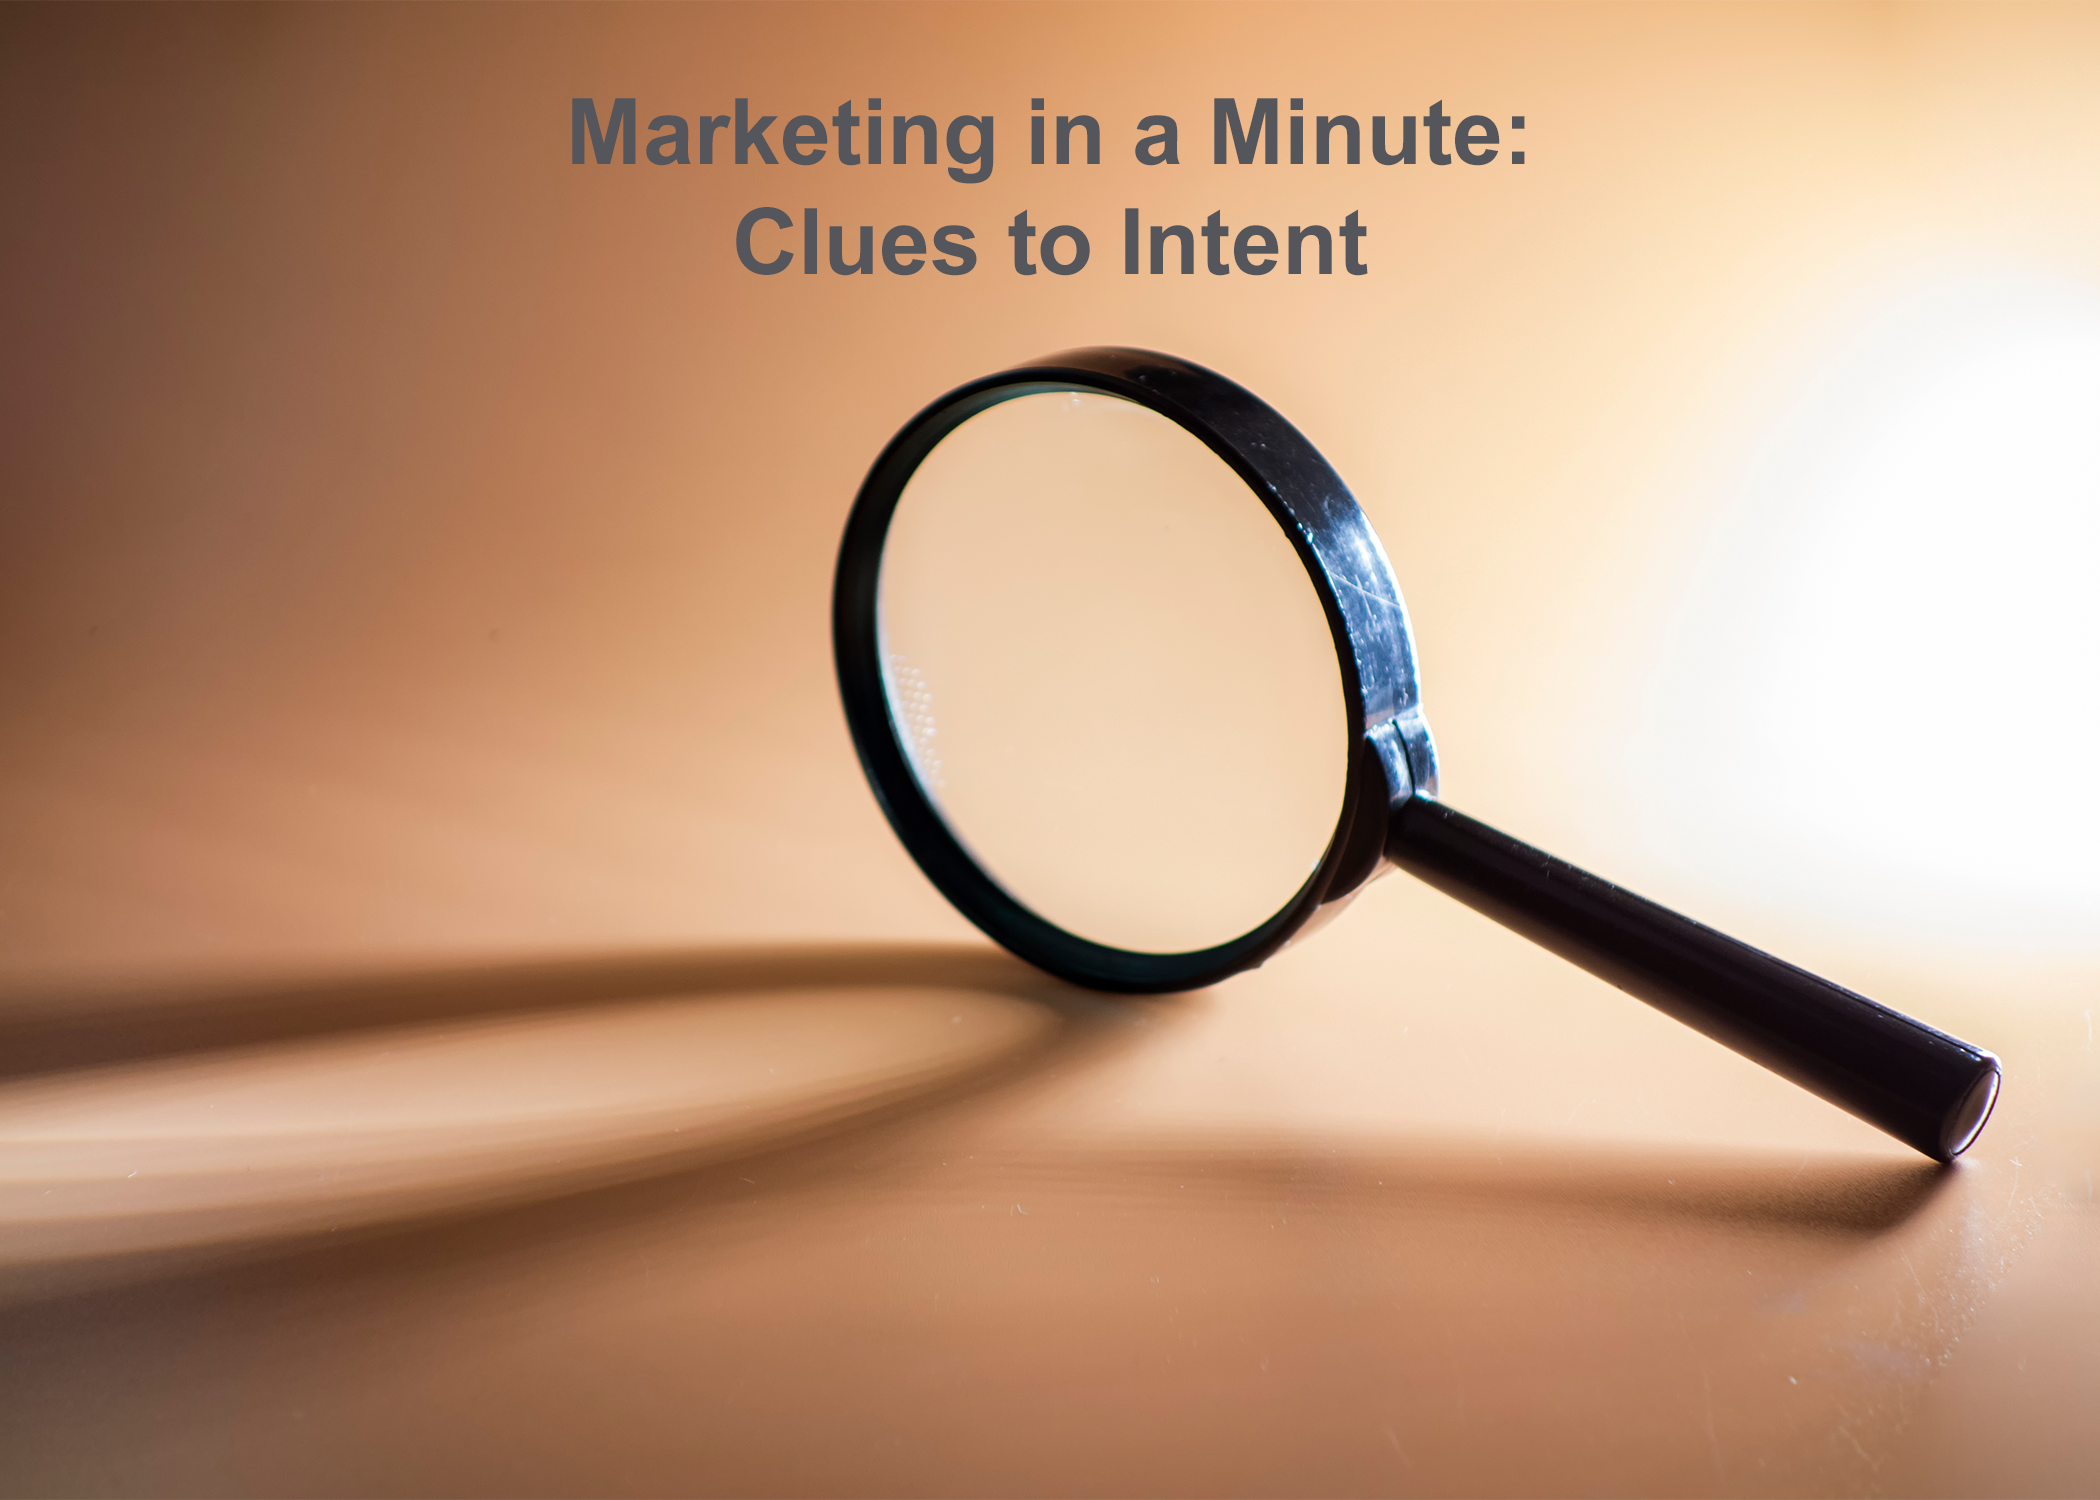 Marketing in a Minute: Clues to Intent